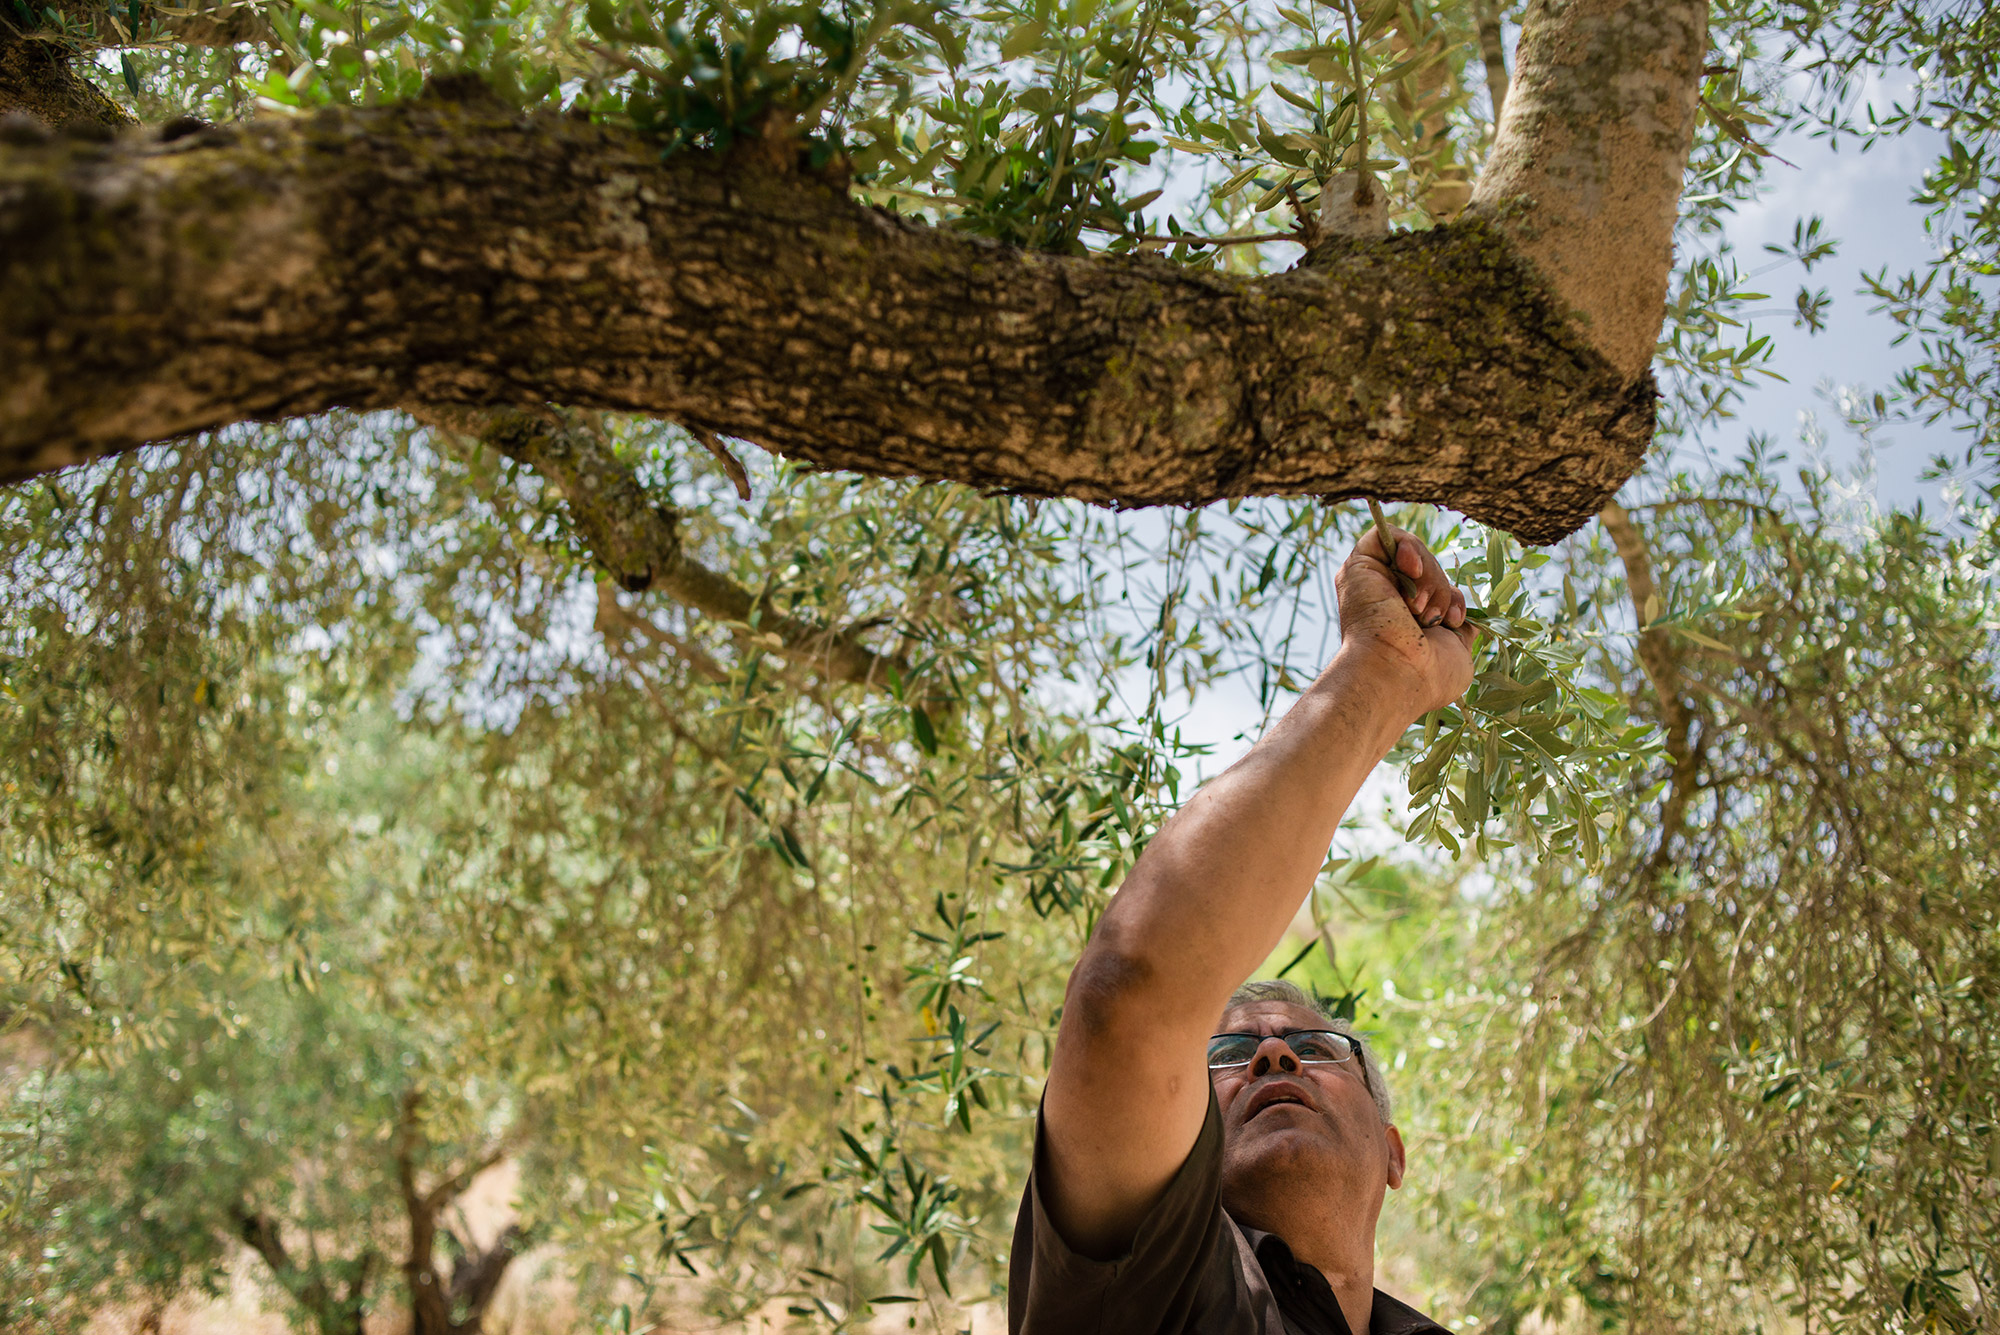 One Land, One Love – Palestinians and Israelis Work Together For the